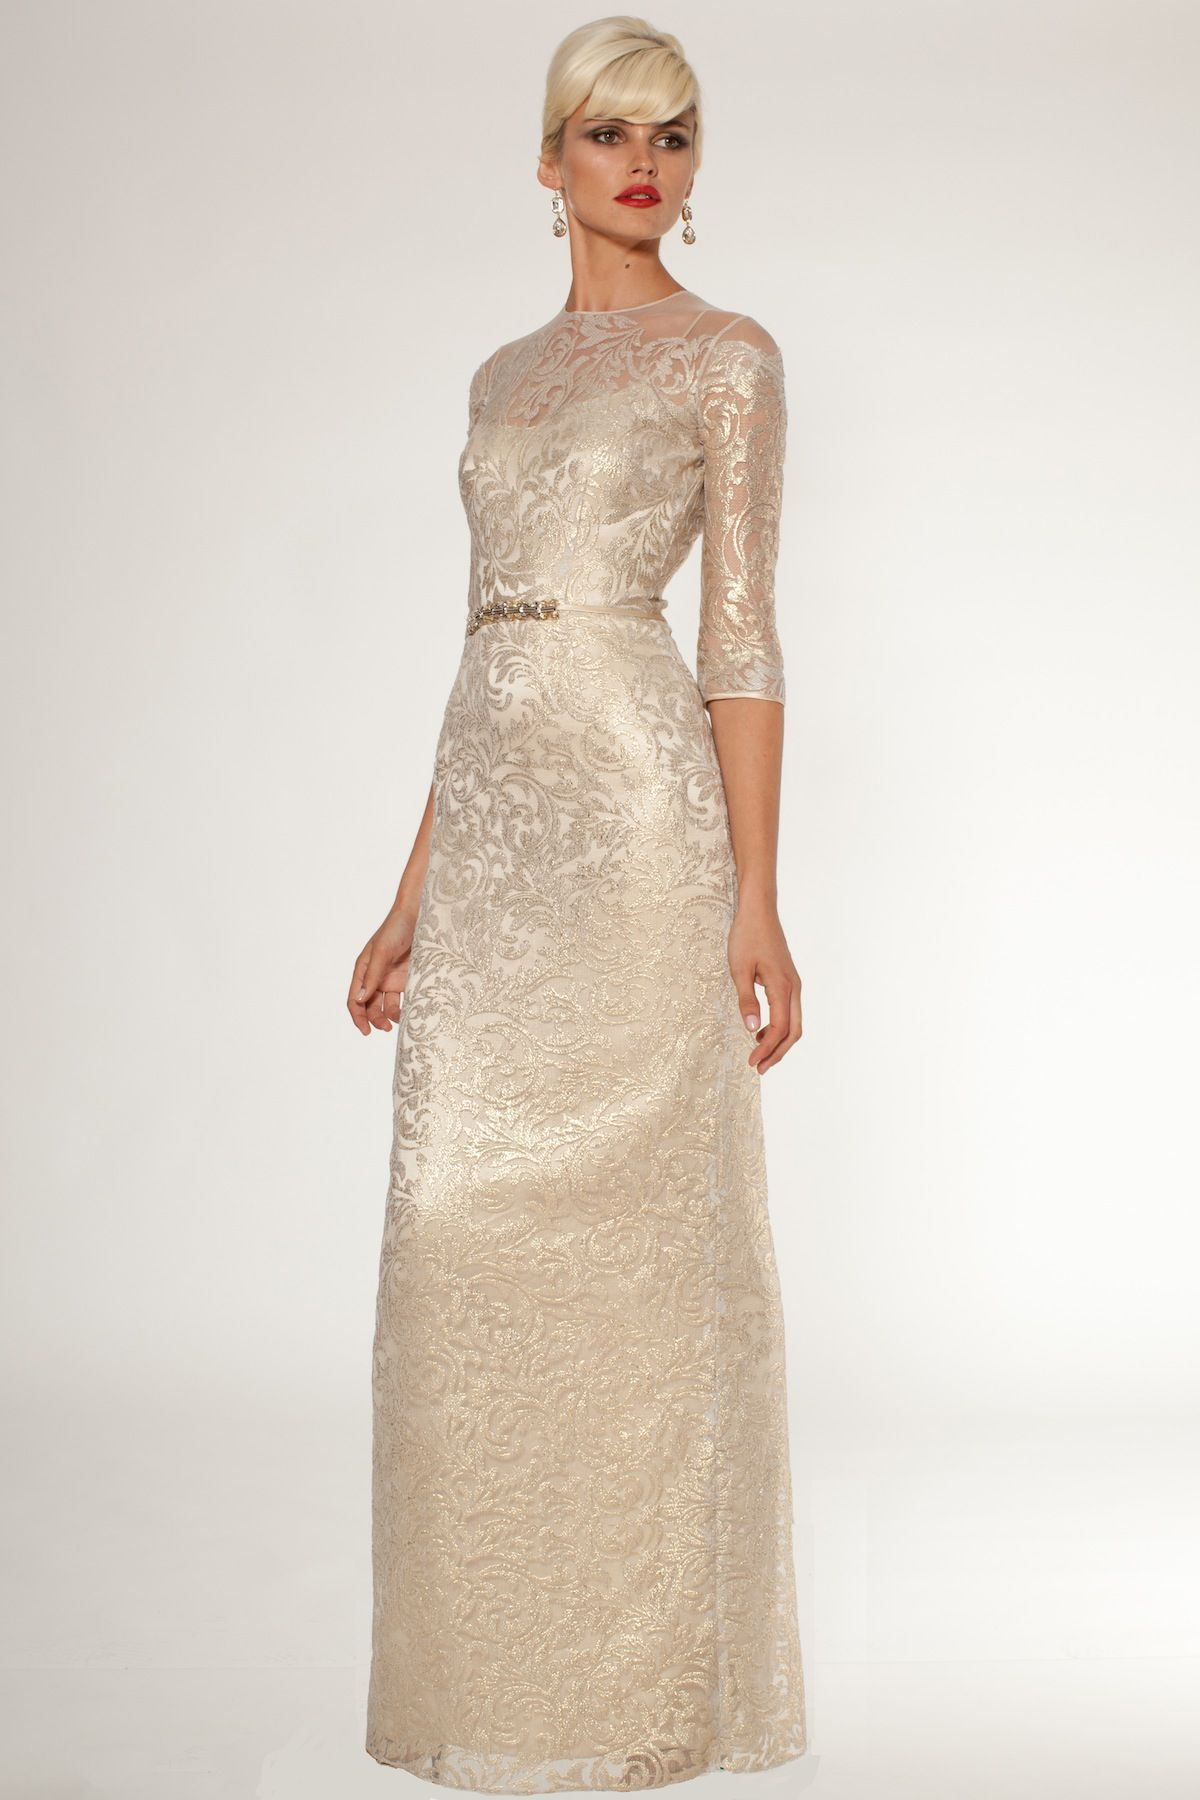 Gold, Taupe, and Neutral Mother of the Bride Dresses | Gold ...